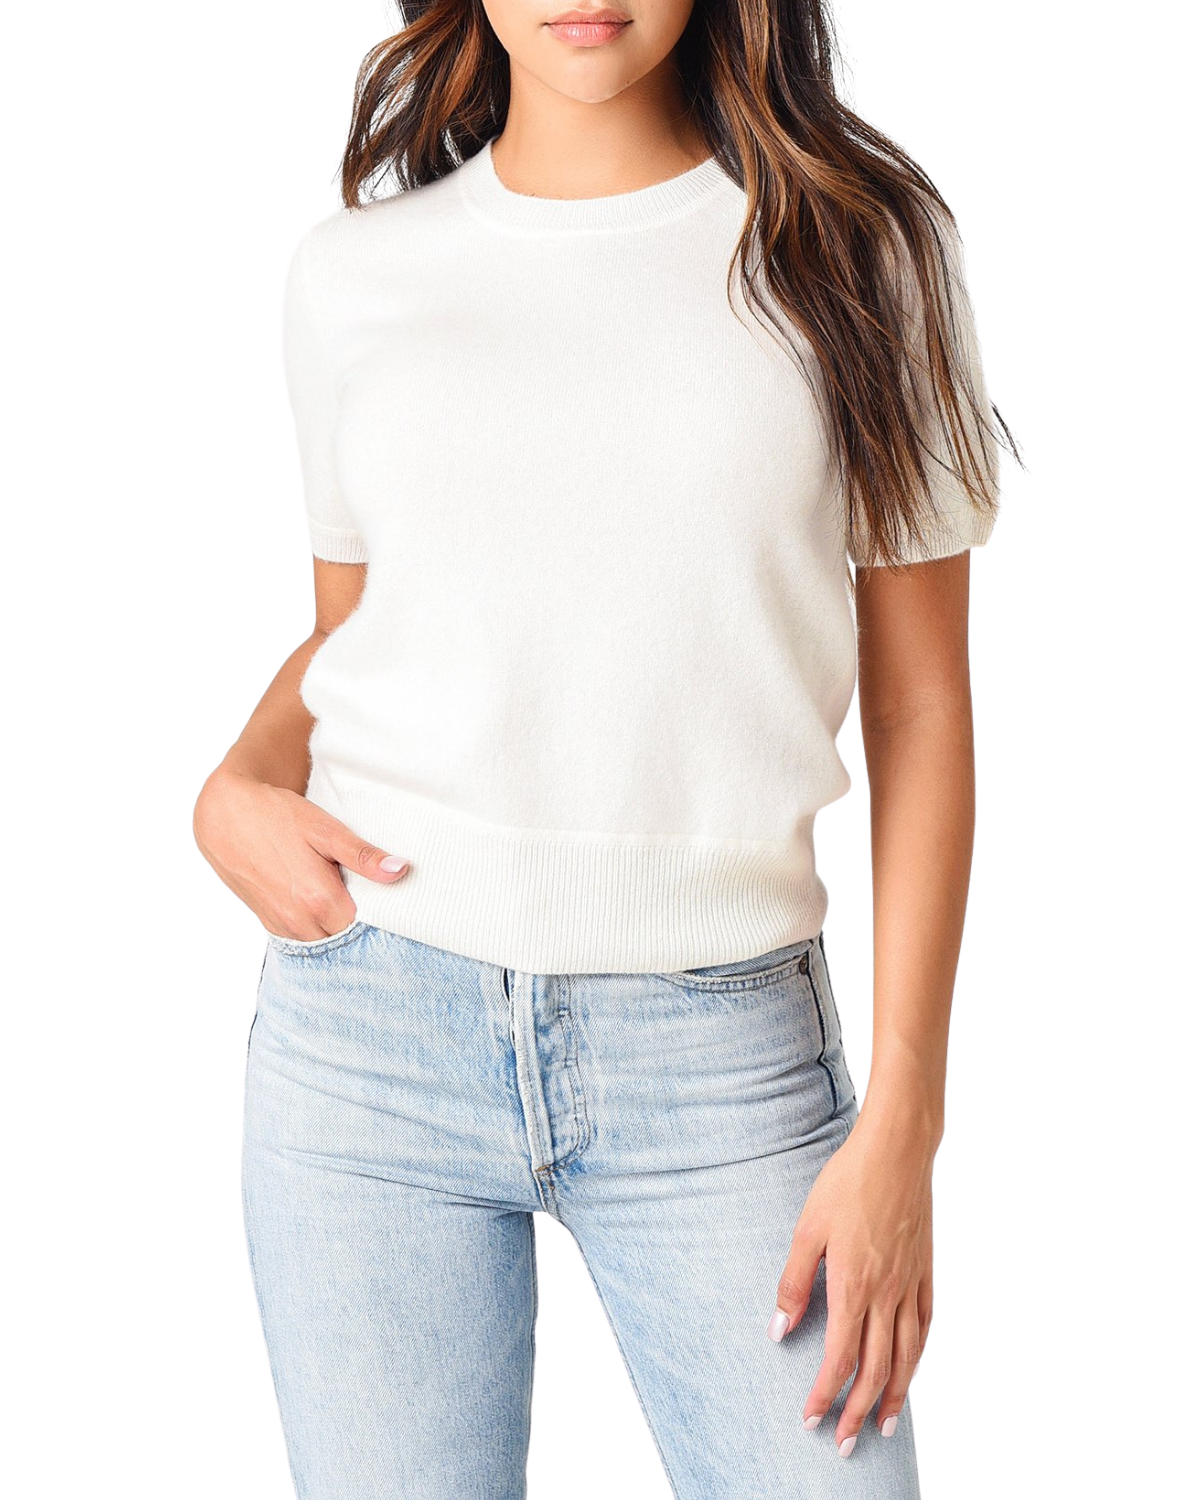 Short Sleeve Cashmere Crop Pullover Sweater - White